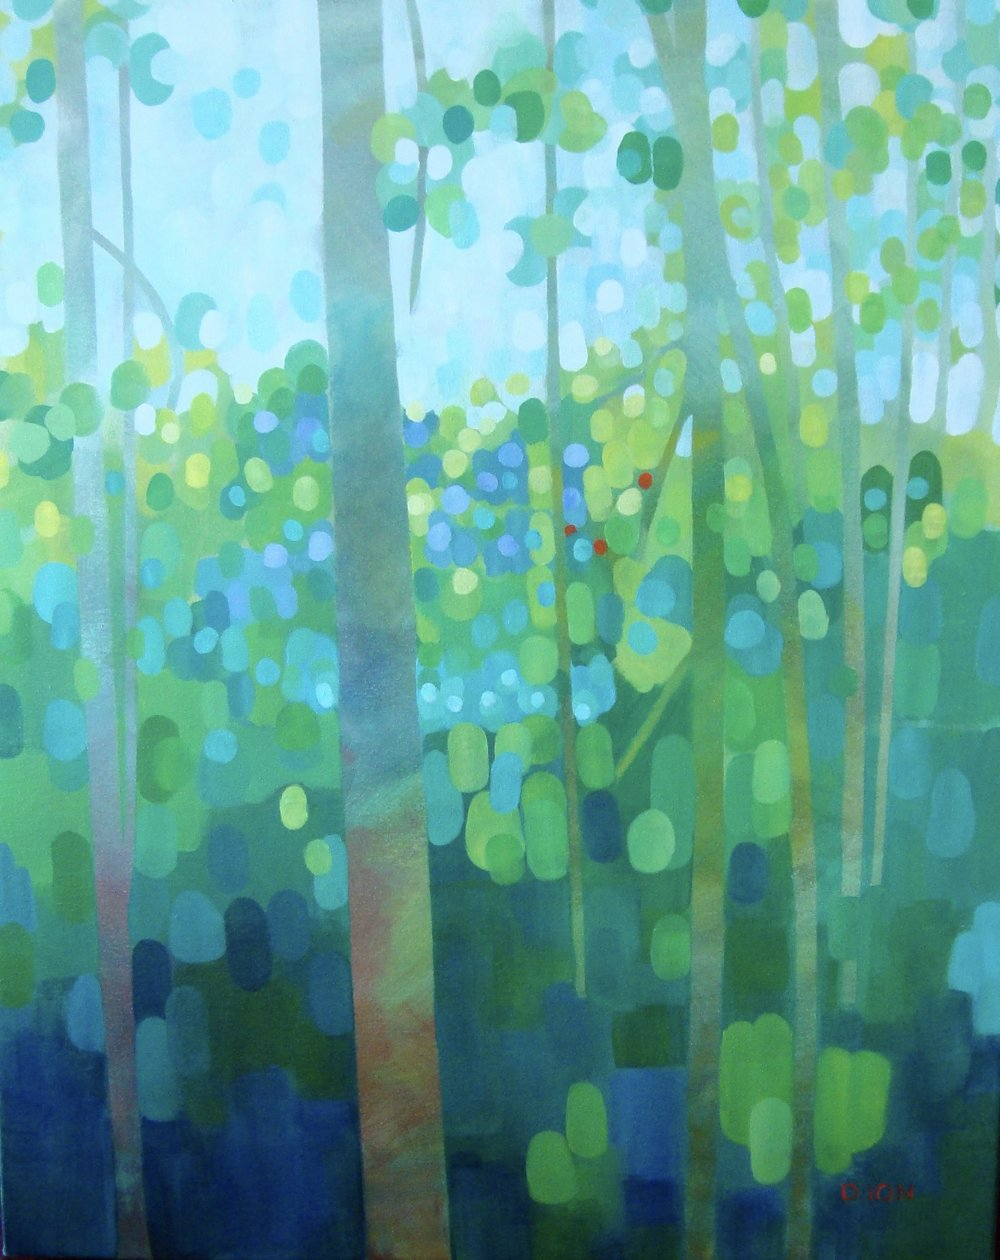 The Patterned Forest 24x30 in.